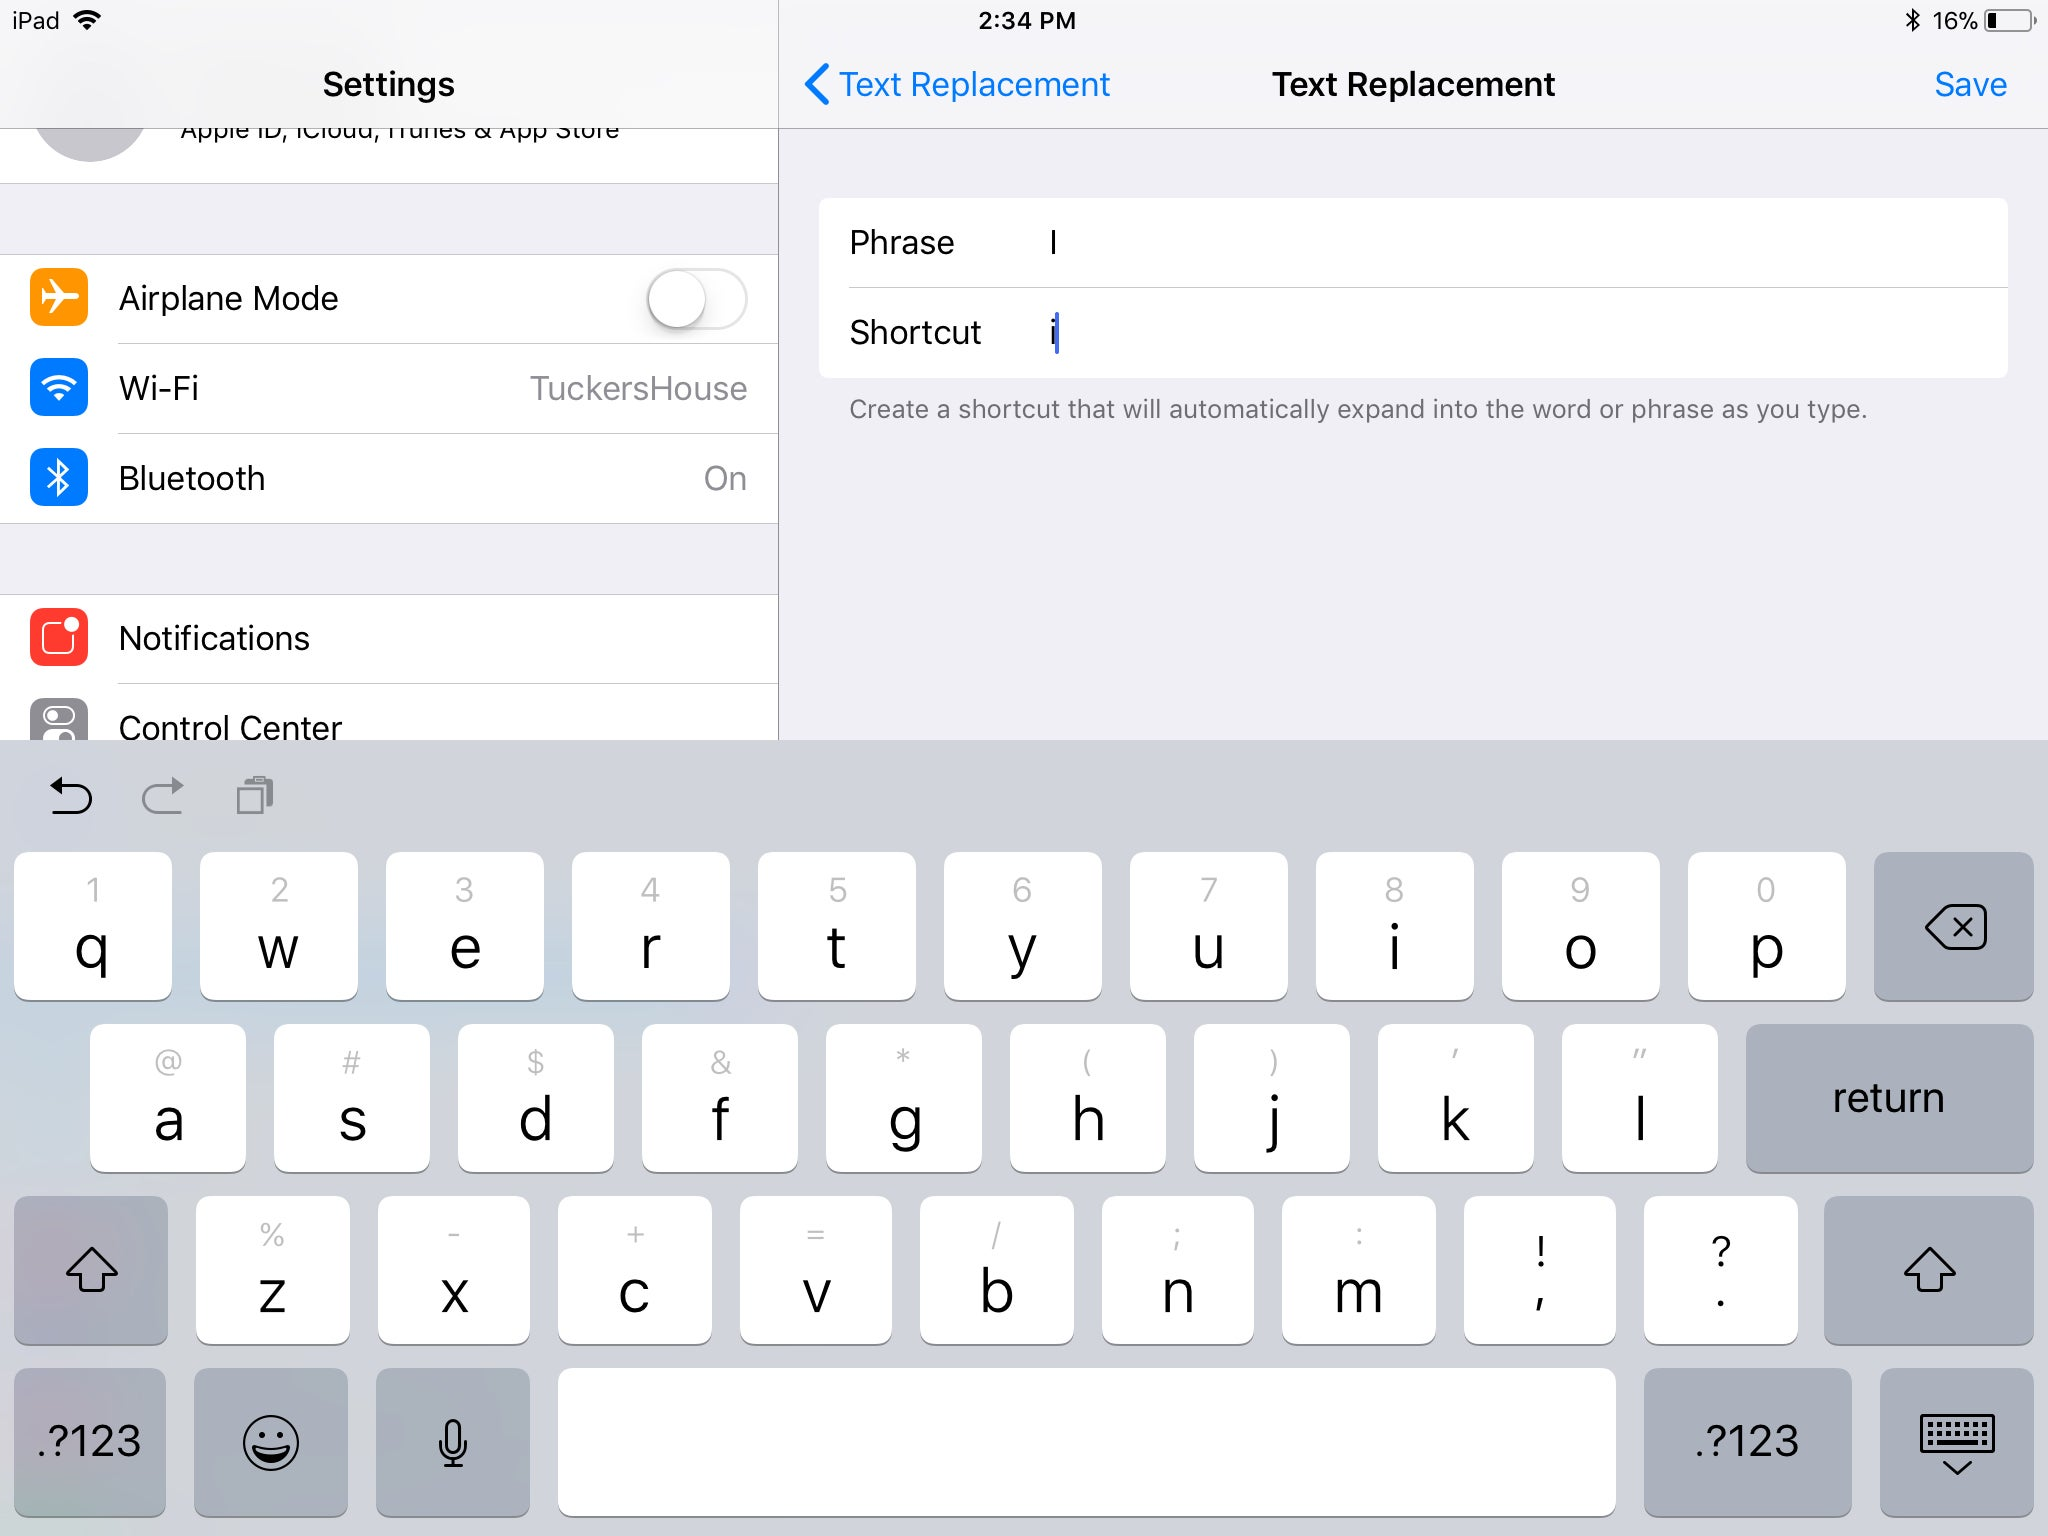 IOS 11.1 Devices Hit With Weird Autocorrecting Keyboard Bug